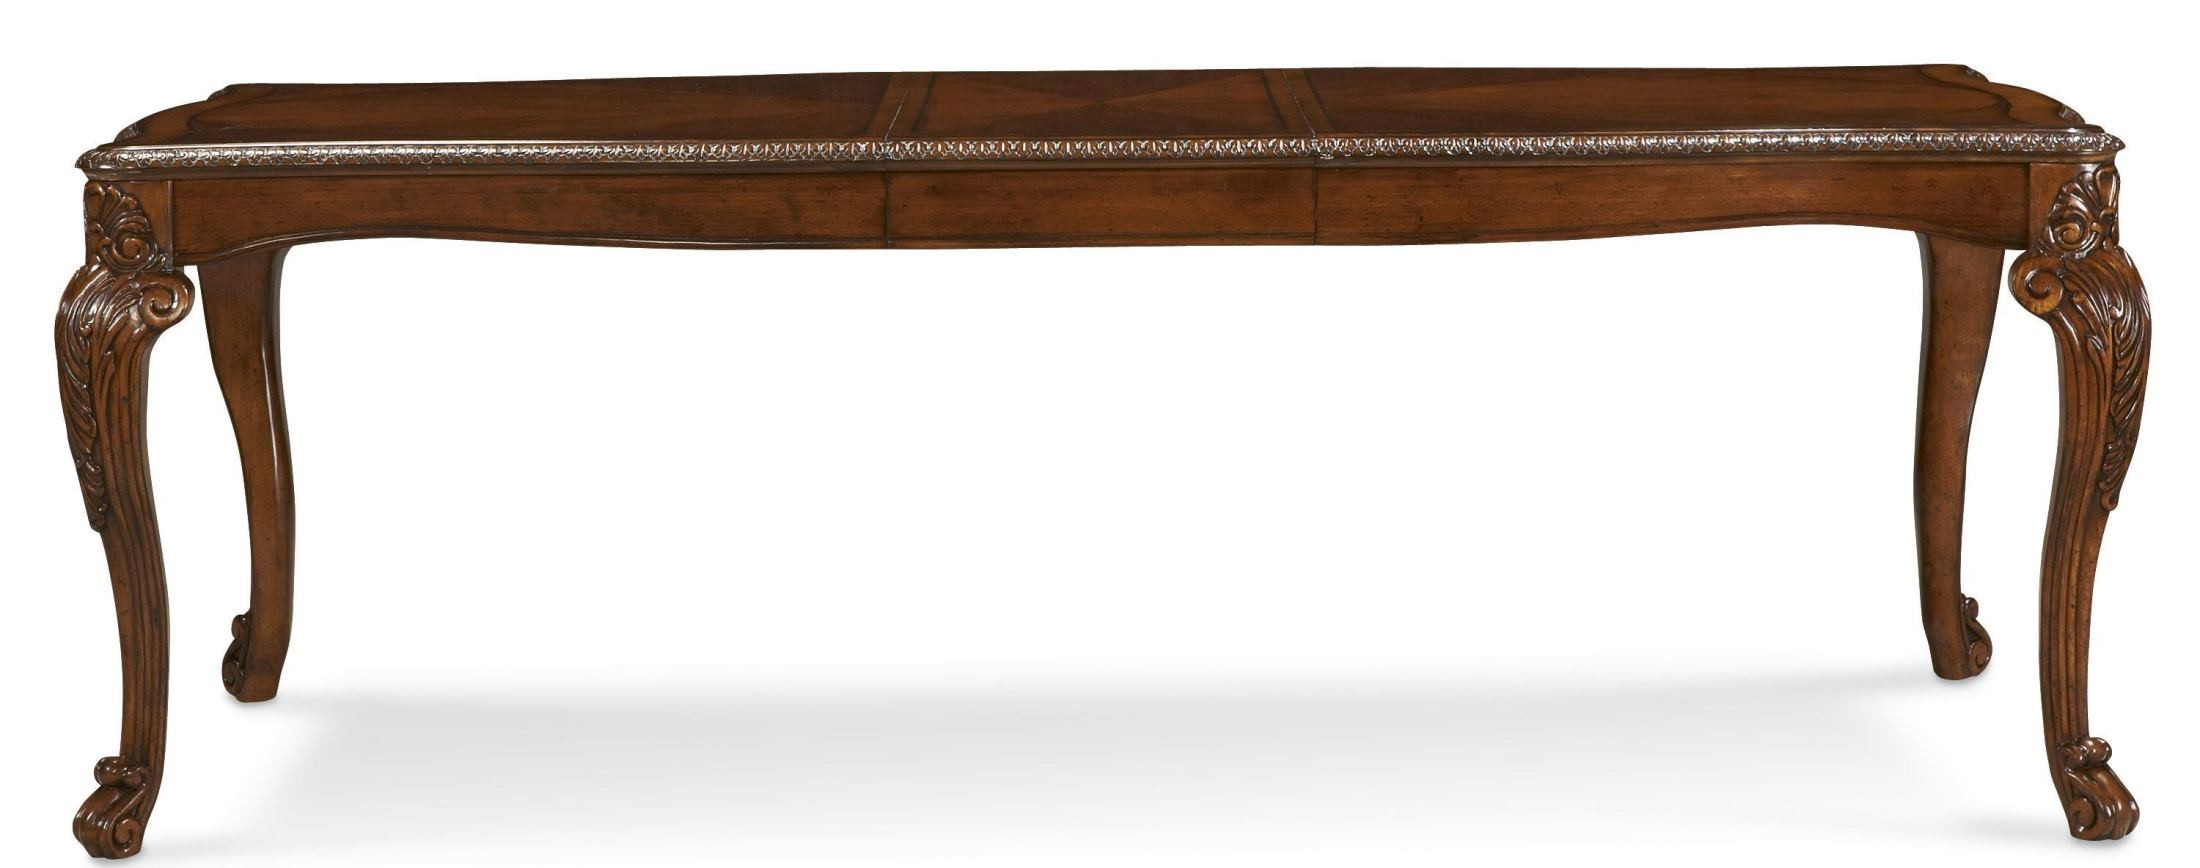 Old World Extendable Dining Table From ART 143220 2606 Coleman Furniture